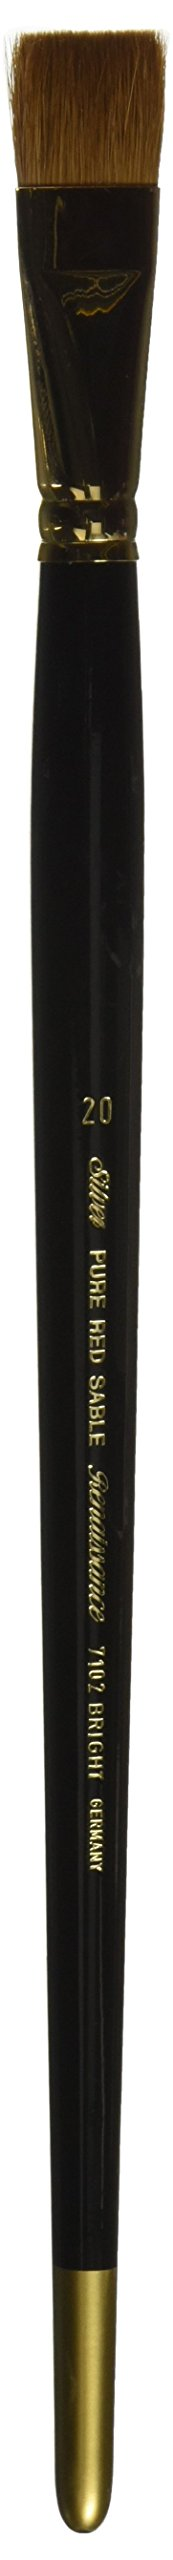 Silver Brush 7102-20 Renaissance Pure Red Sable Long Handle Premium Quality Brush, Bright, Size 20 by Silver Brush Limited